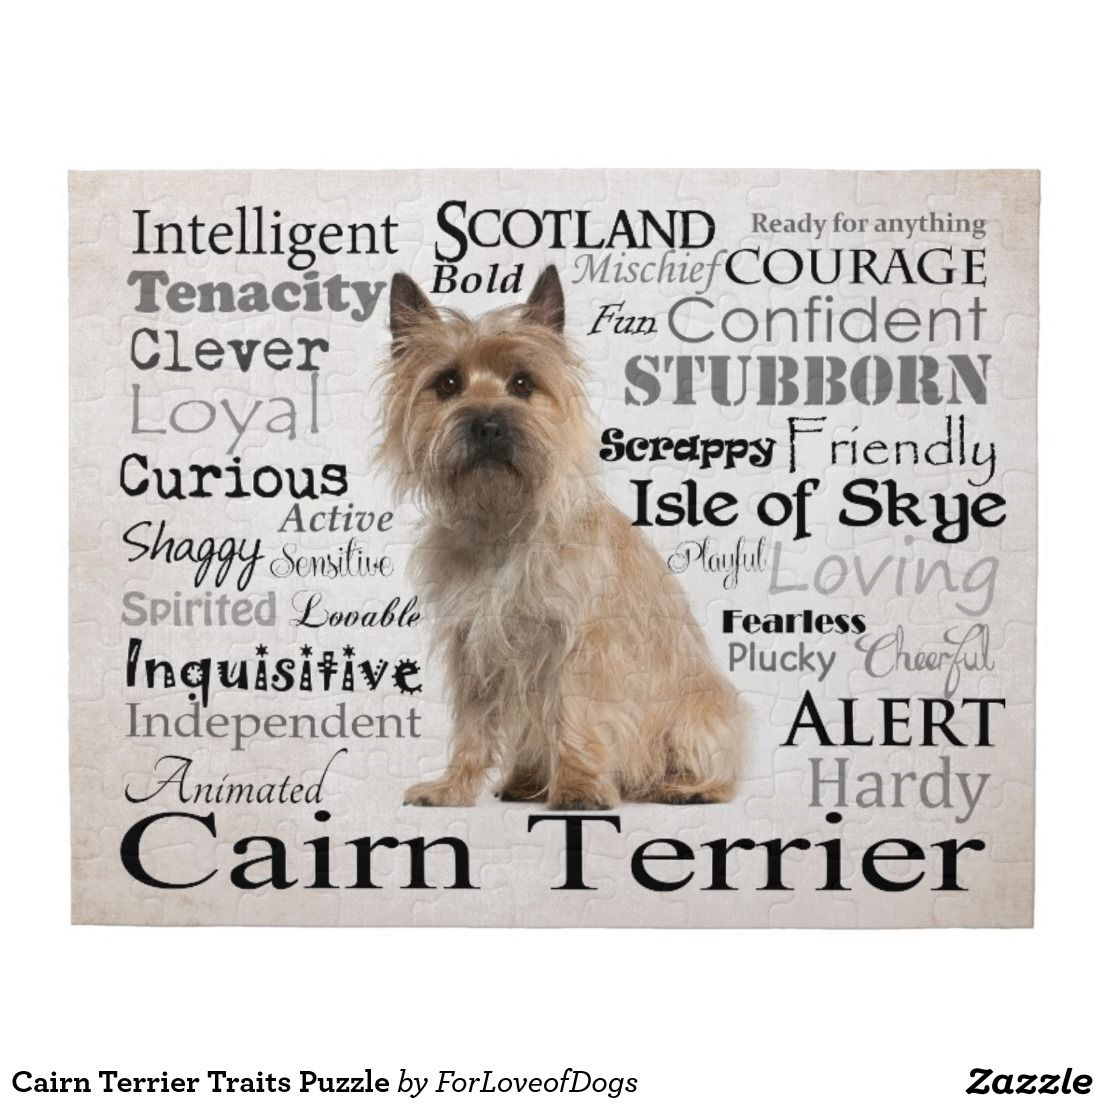 Cairn Terrier Traits Puzzle Zazzle Com Cairn Terrier Pitbull